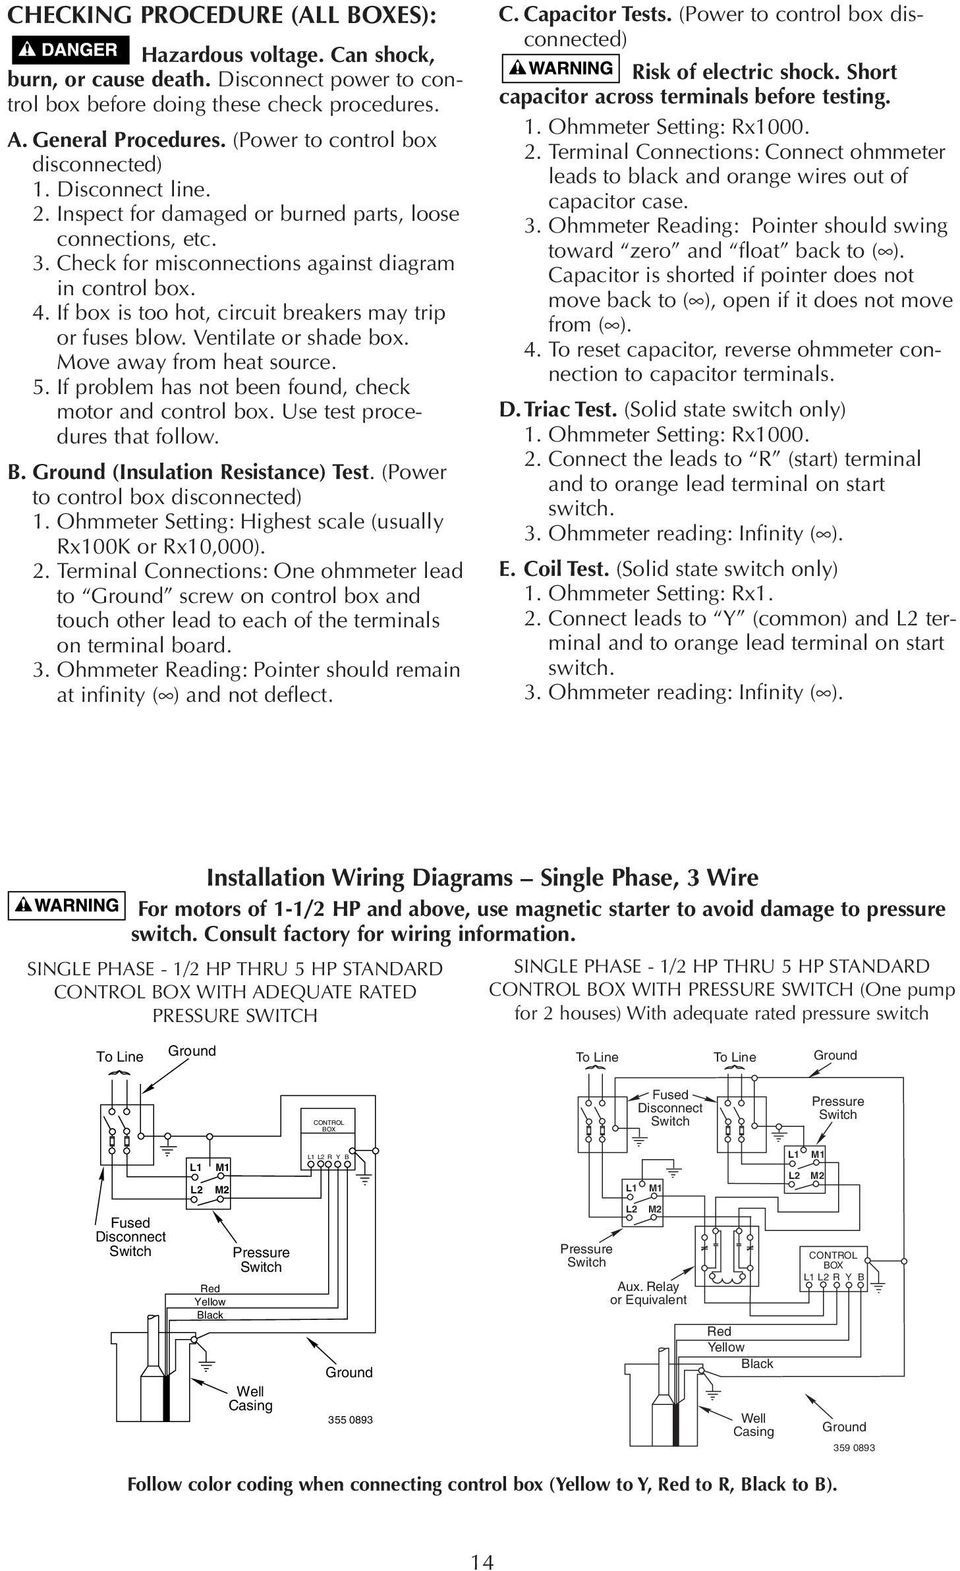 Owners Manual Installation And Operating Instructions 4 Diagrams Three Phase Motors Ydelta 6 Leads Us If Box Is Too Hot Circuit Breakers May Trip Or Fuses Blow Ventilate 15 Wiring Single 3 Wire For